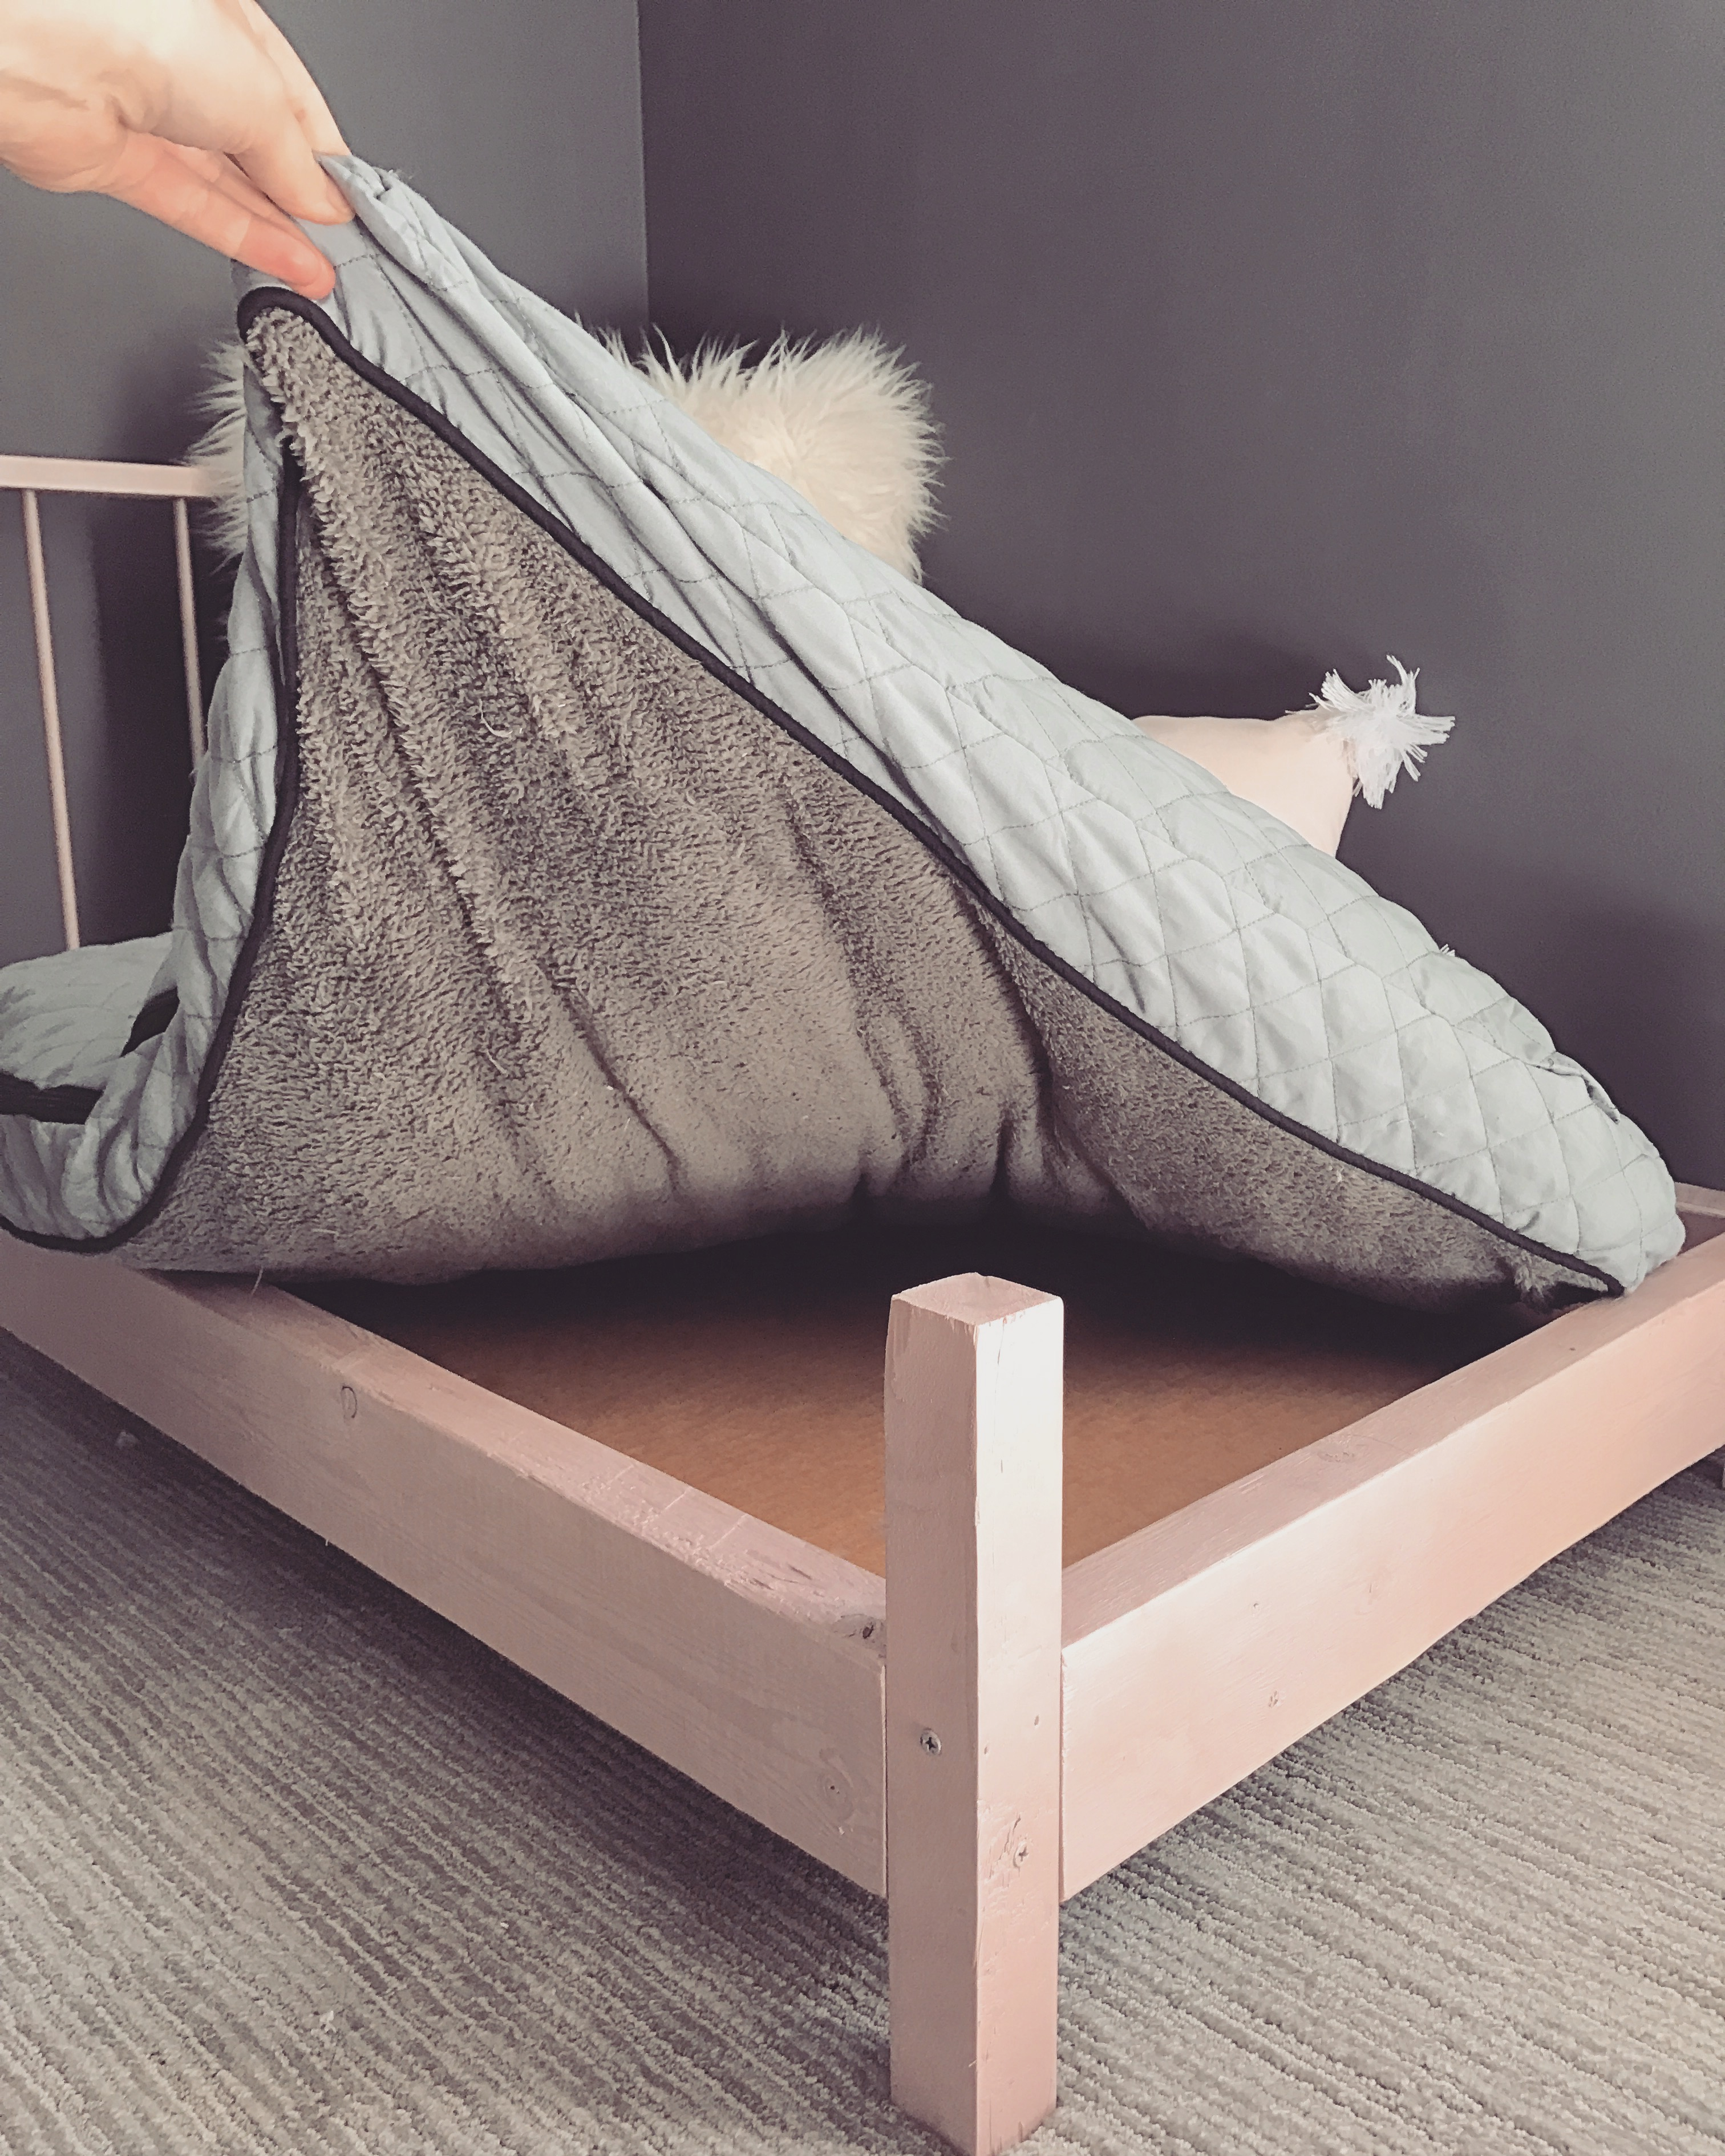 These Pup Bed Frames Can Be Used With Standard Dog Beds Or Pillows, Or You  Can Get Crafty And Fashion Your Own U201cmattressu201d Out Of Upholstery Foam (Iu0027m  Still ...